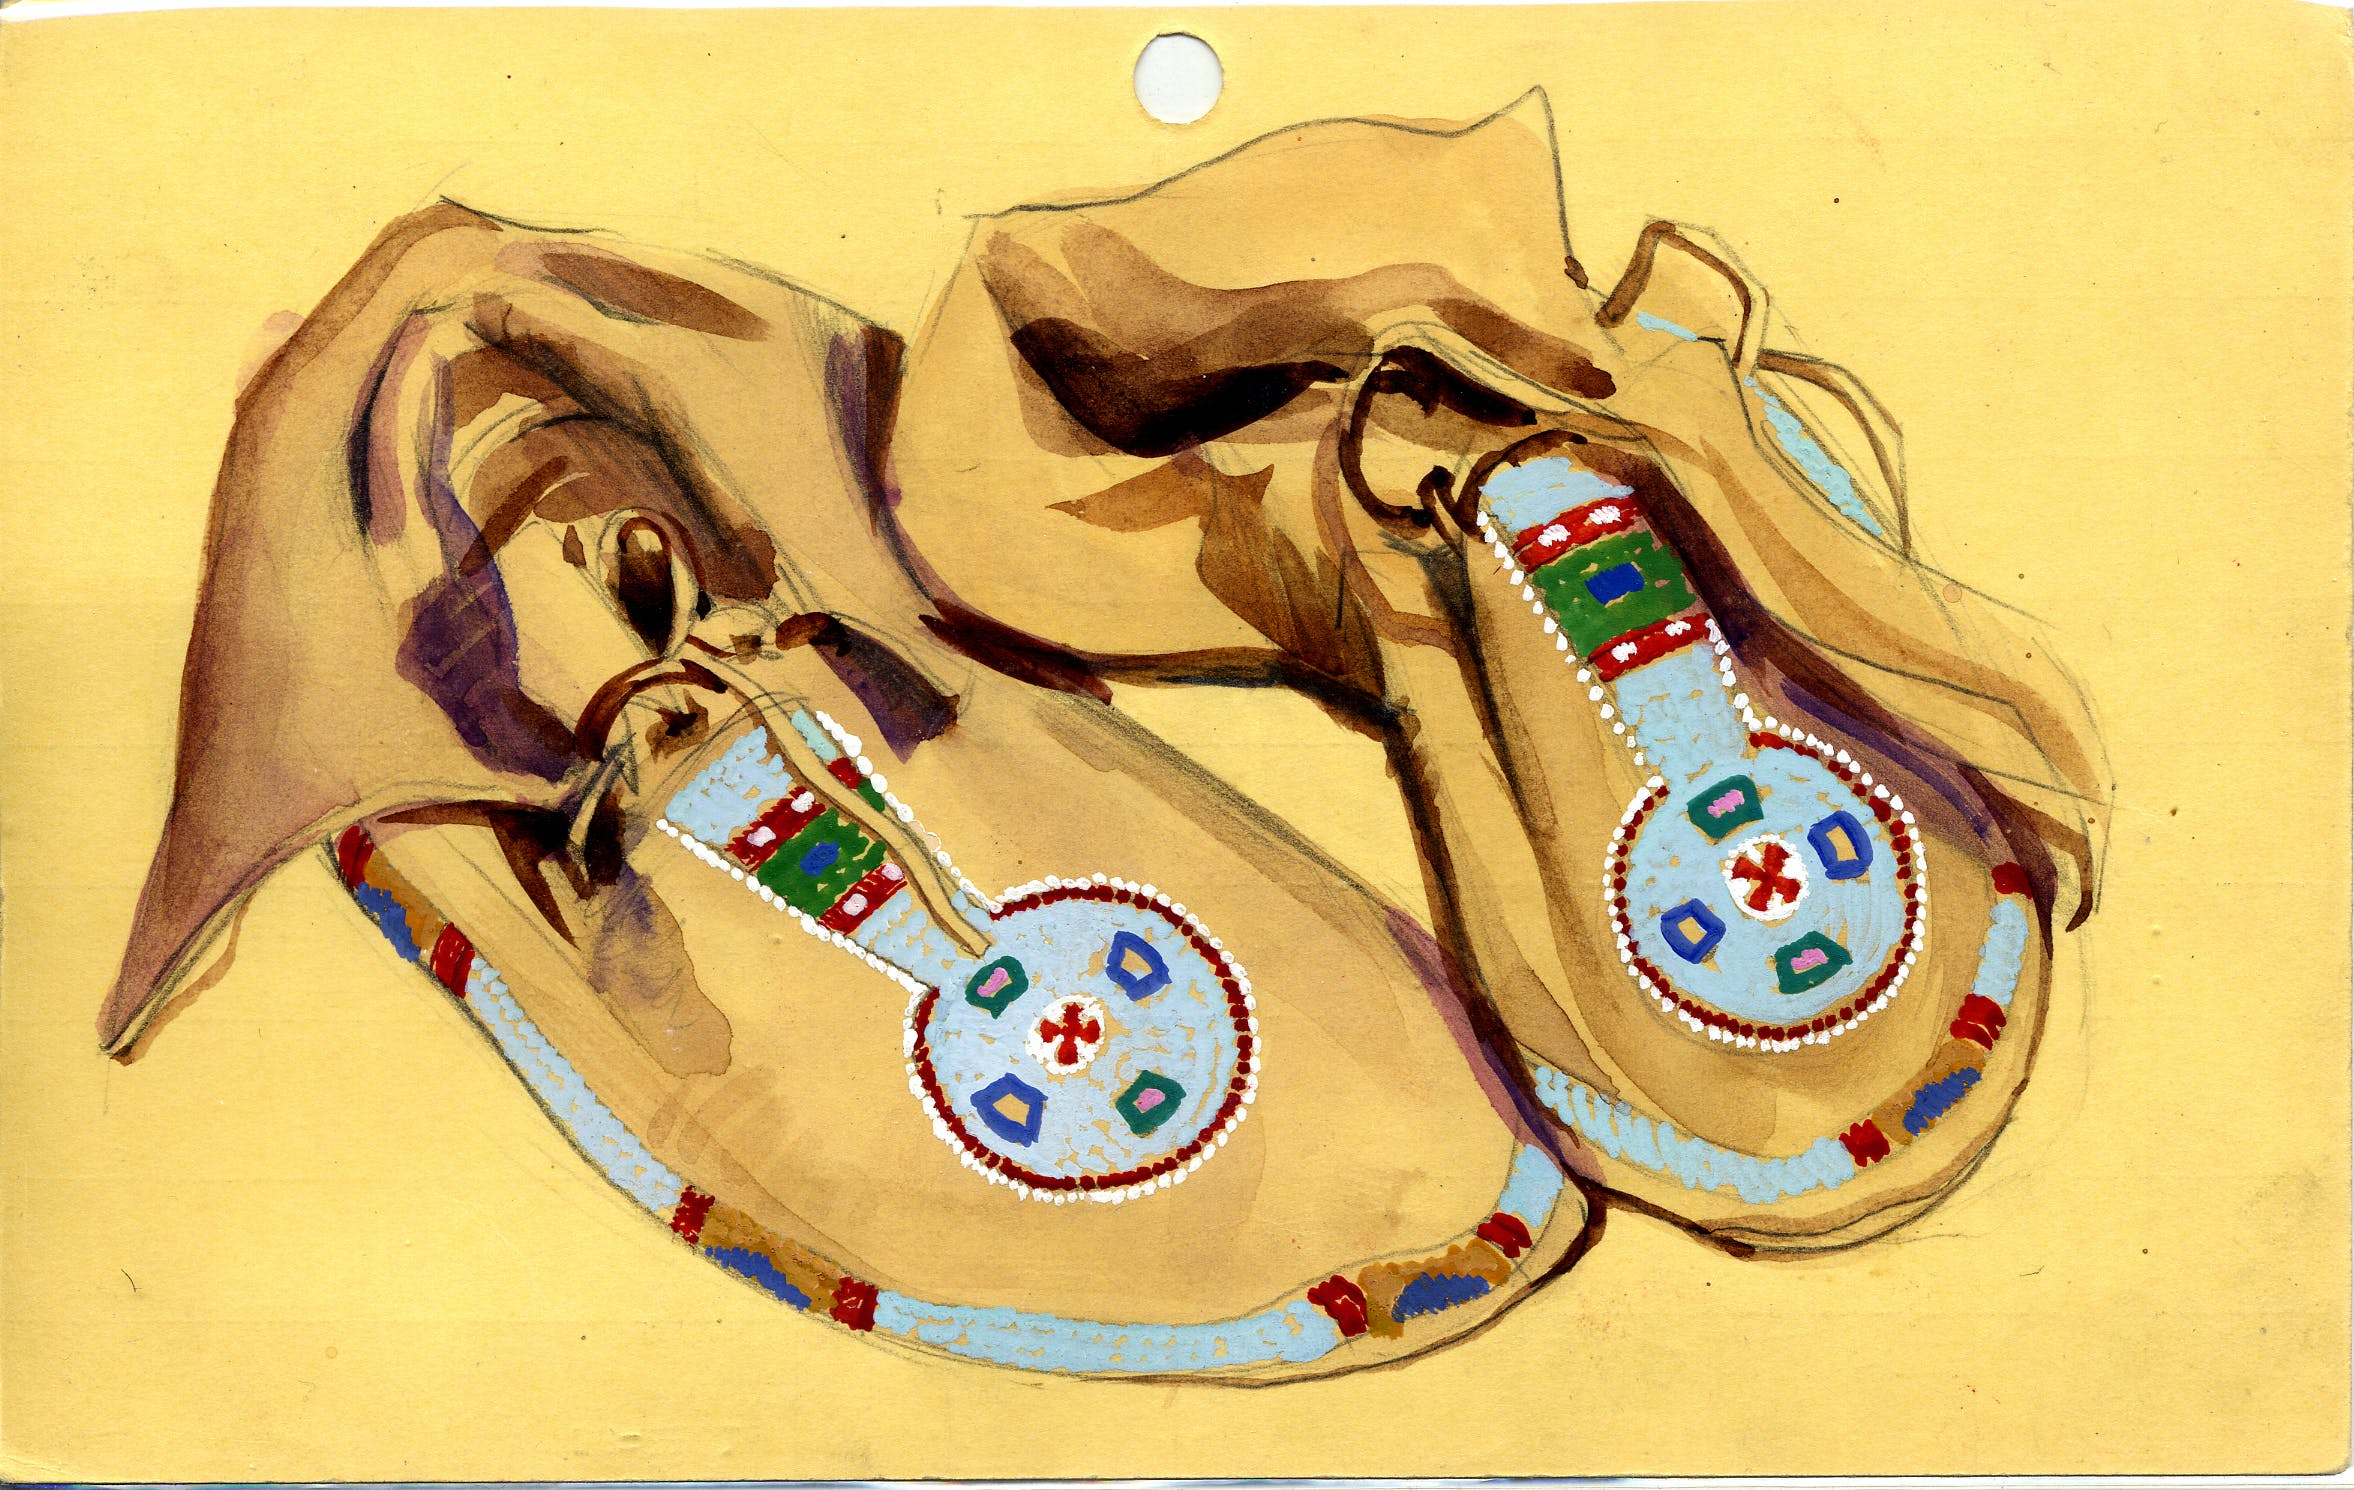 Native american art of colorful shoes.